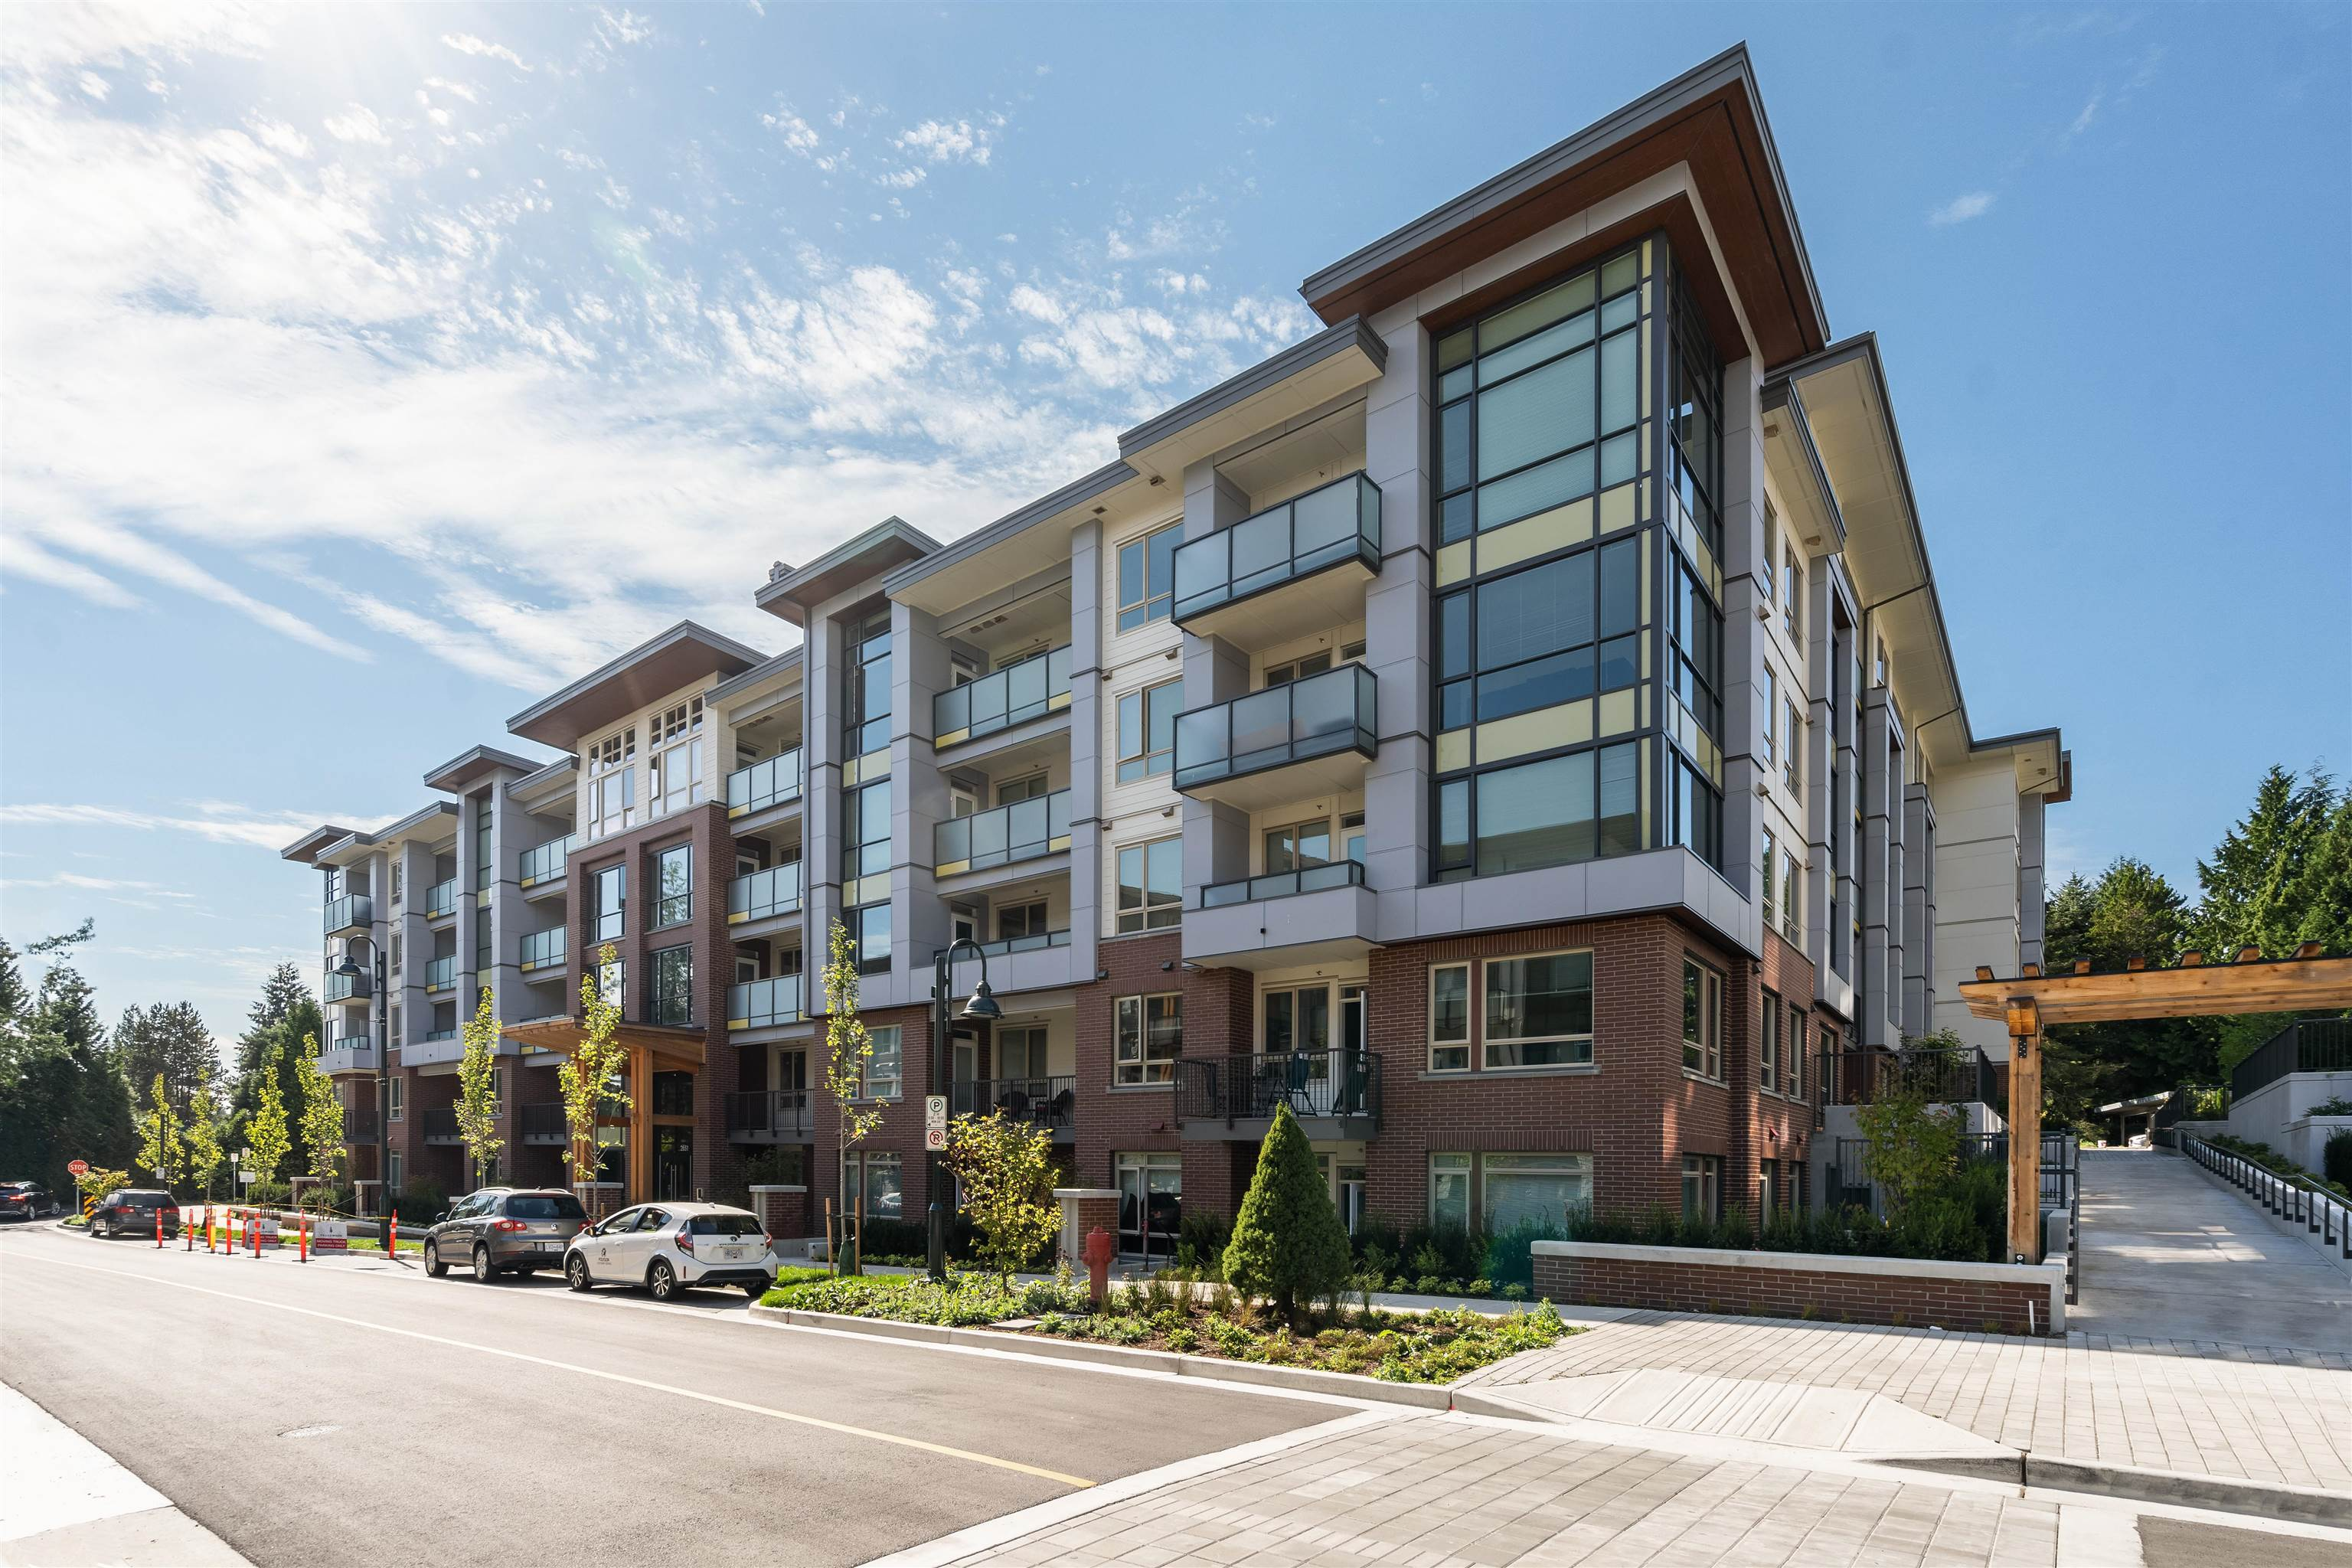 407 2651 LIBRARY LANE - Lynn Valley Apartment/Condo for sale, 2 Bedrooms (R2617872) - #22